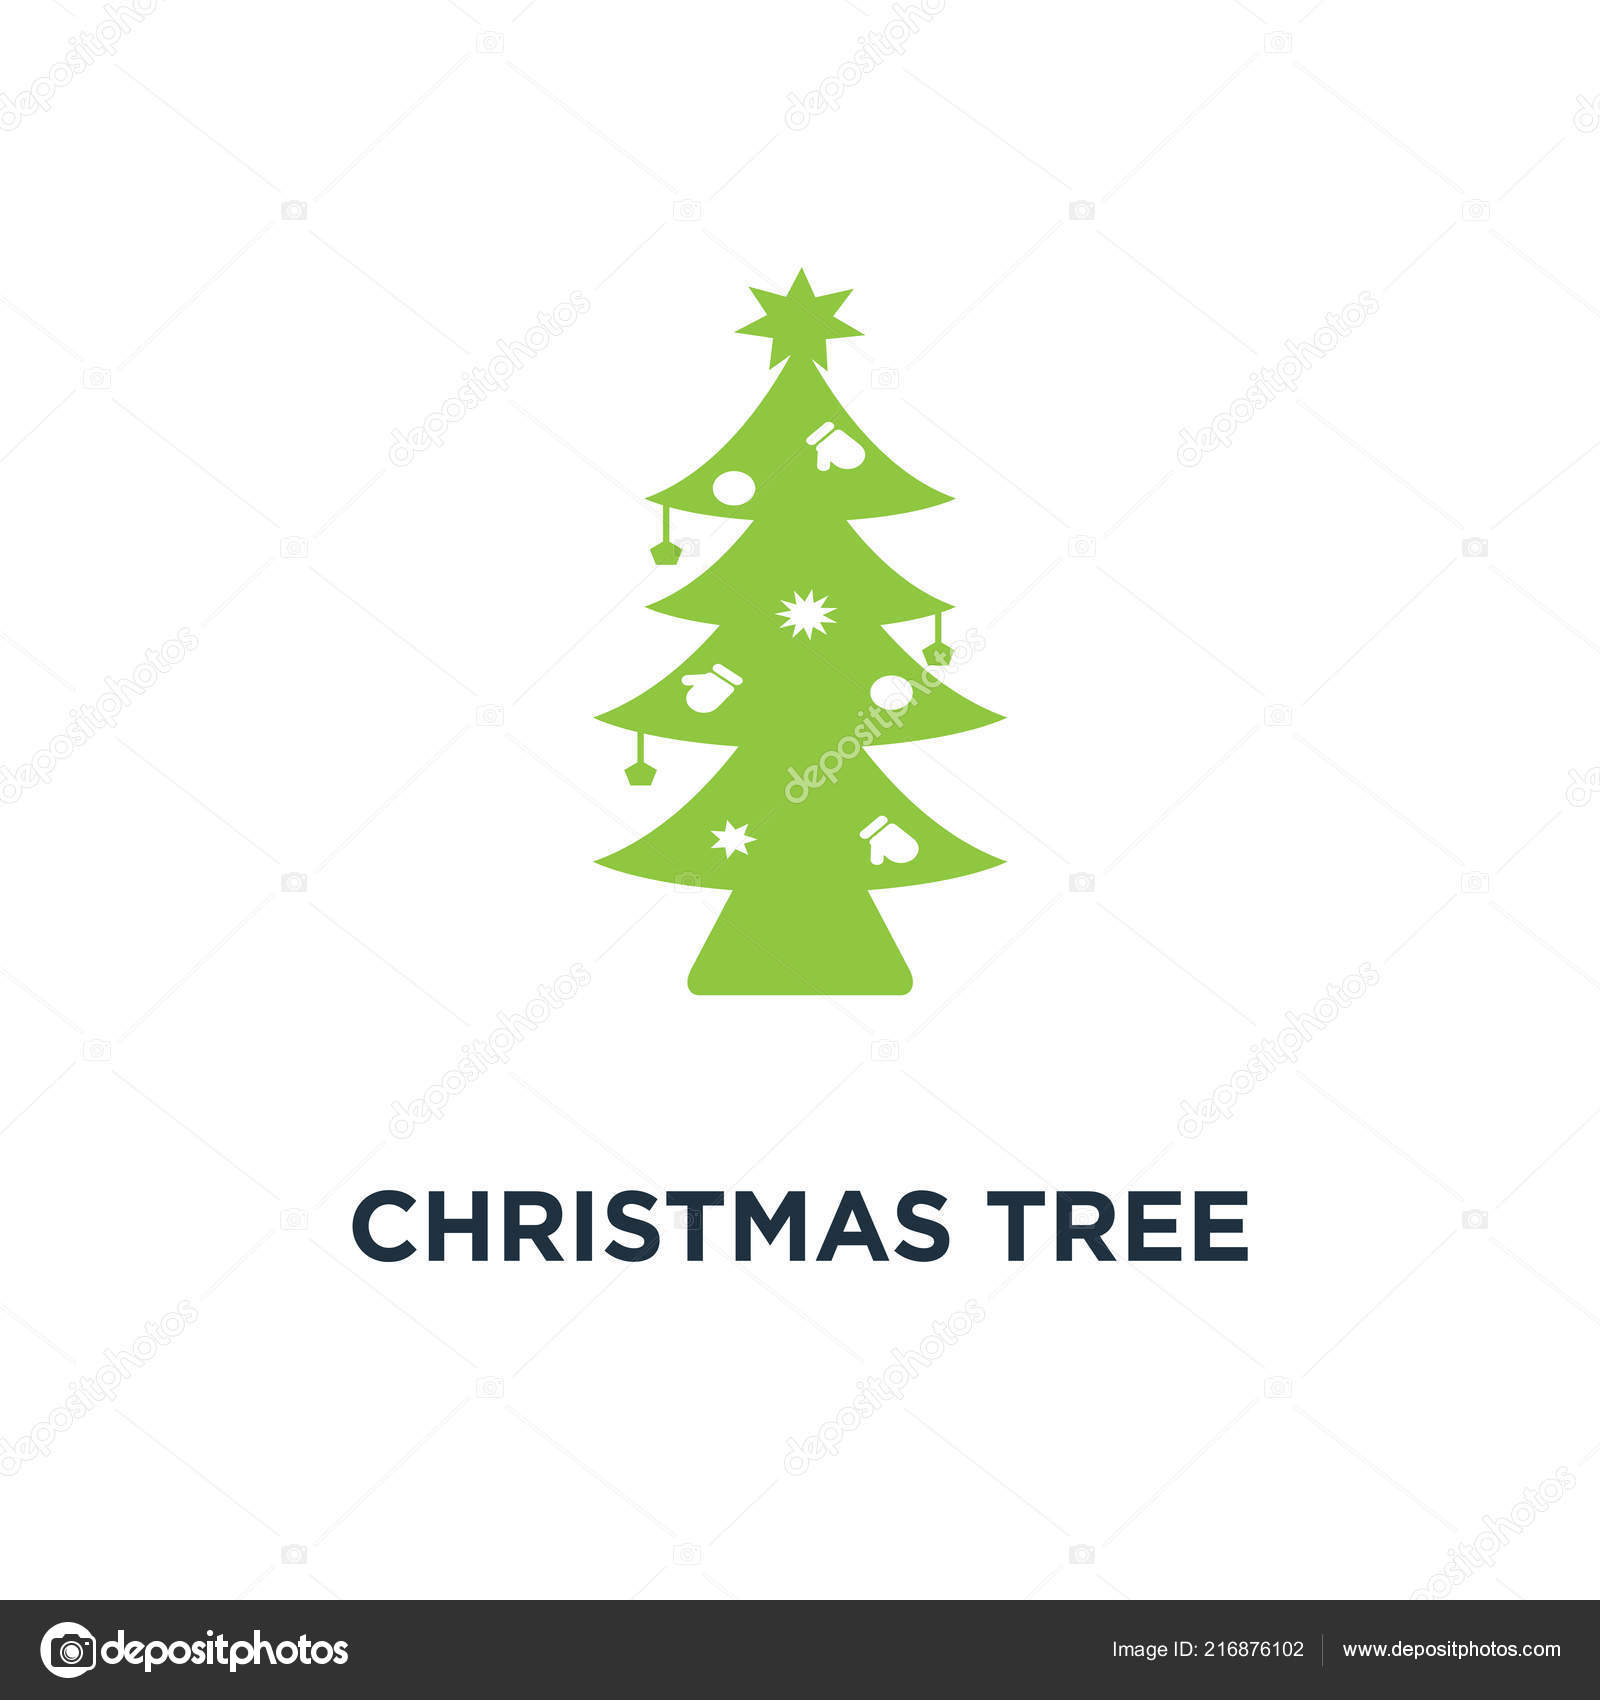 Christmas Holidays Icon.Christmas Tree Icon Holidays Button Concept Symbol Design